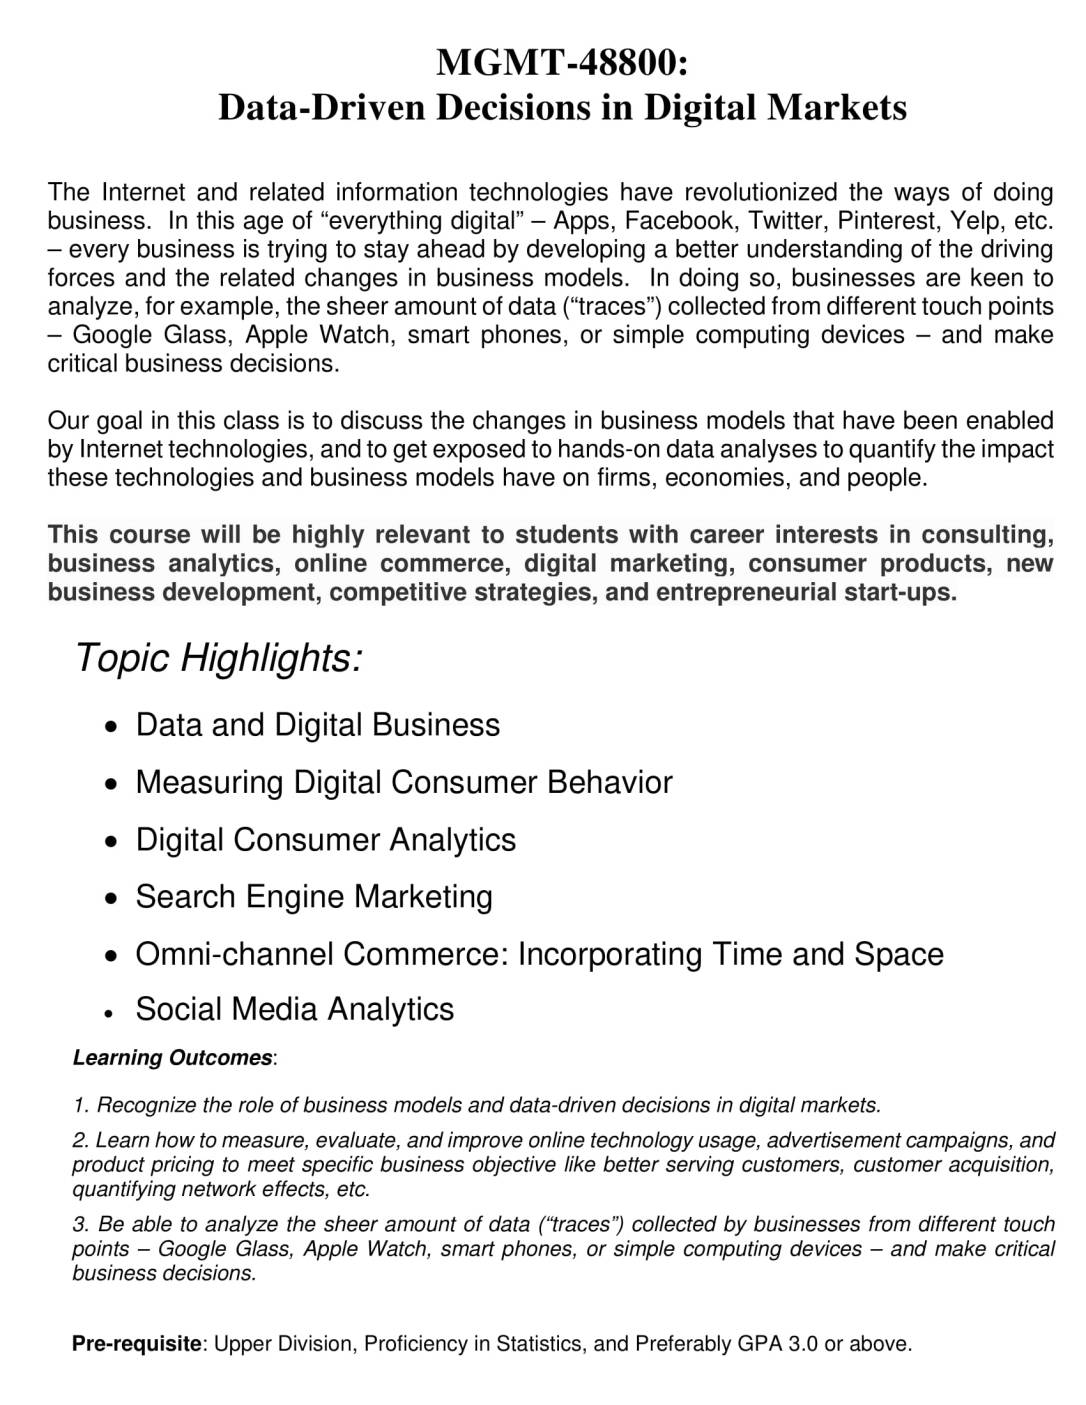 MGMT 488 Course Flyer-1.jpg